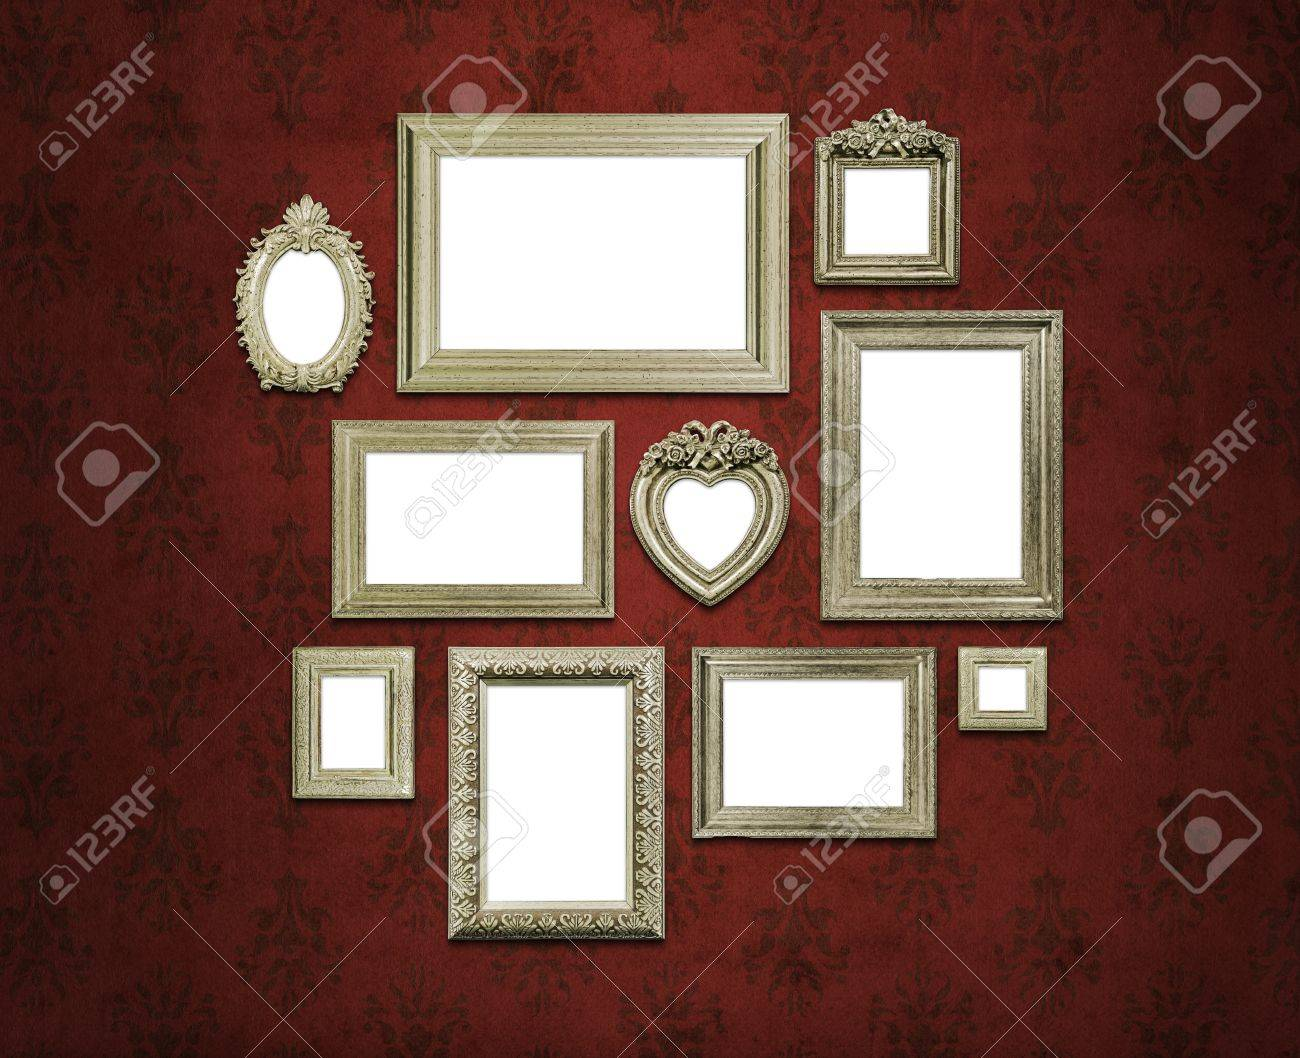 Empty family frames on art deco or vintage walls Stock Photo - 19200603